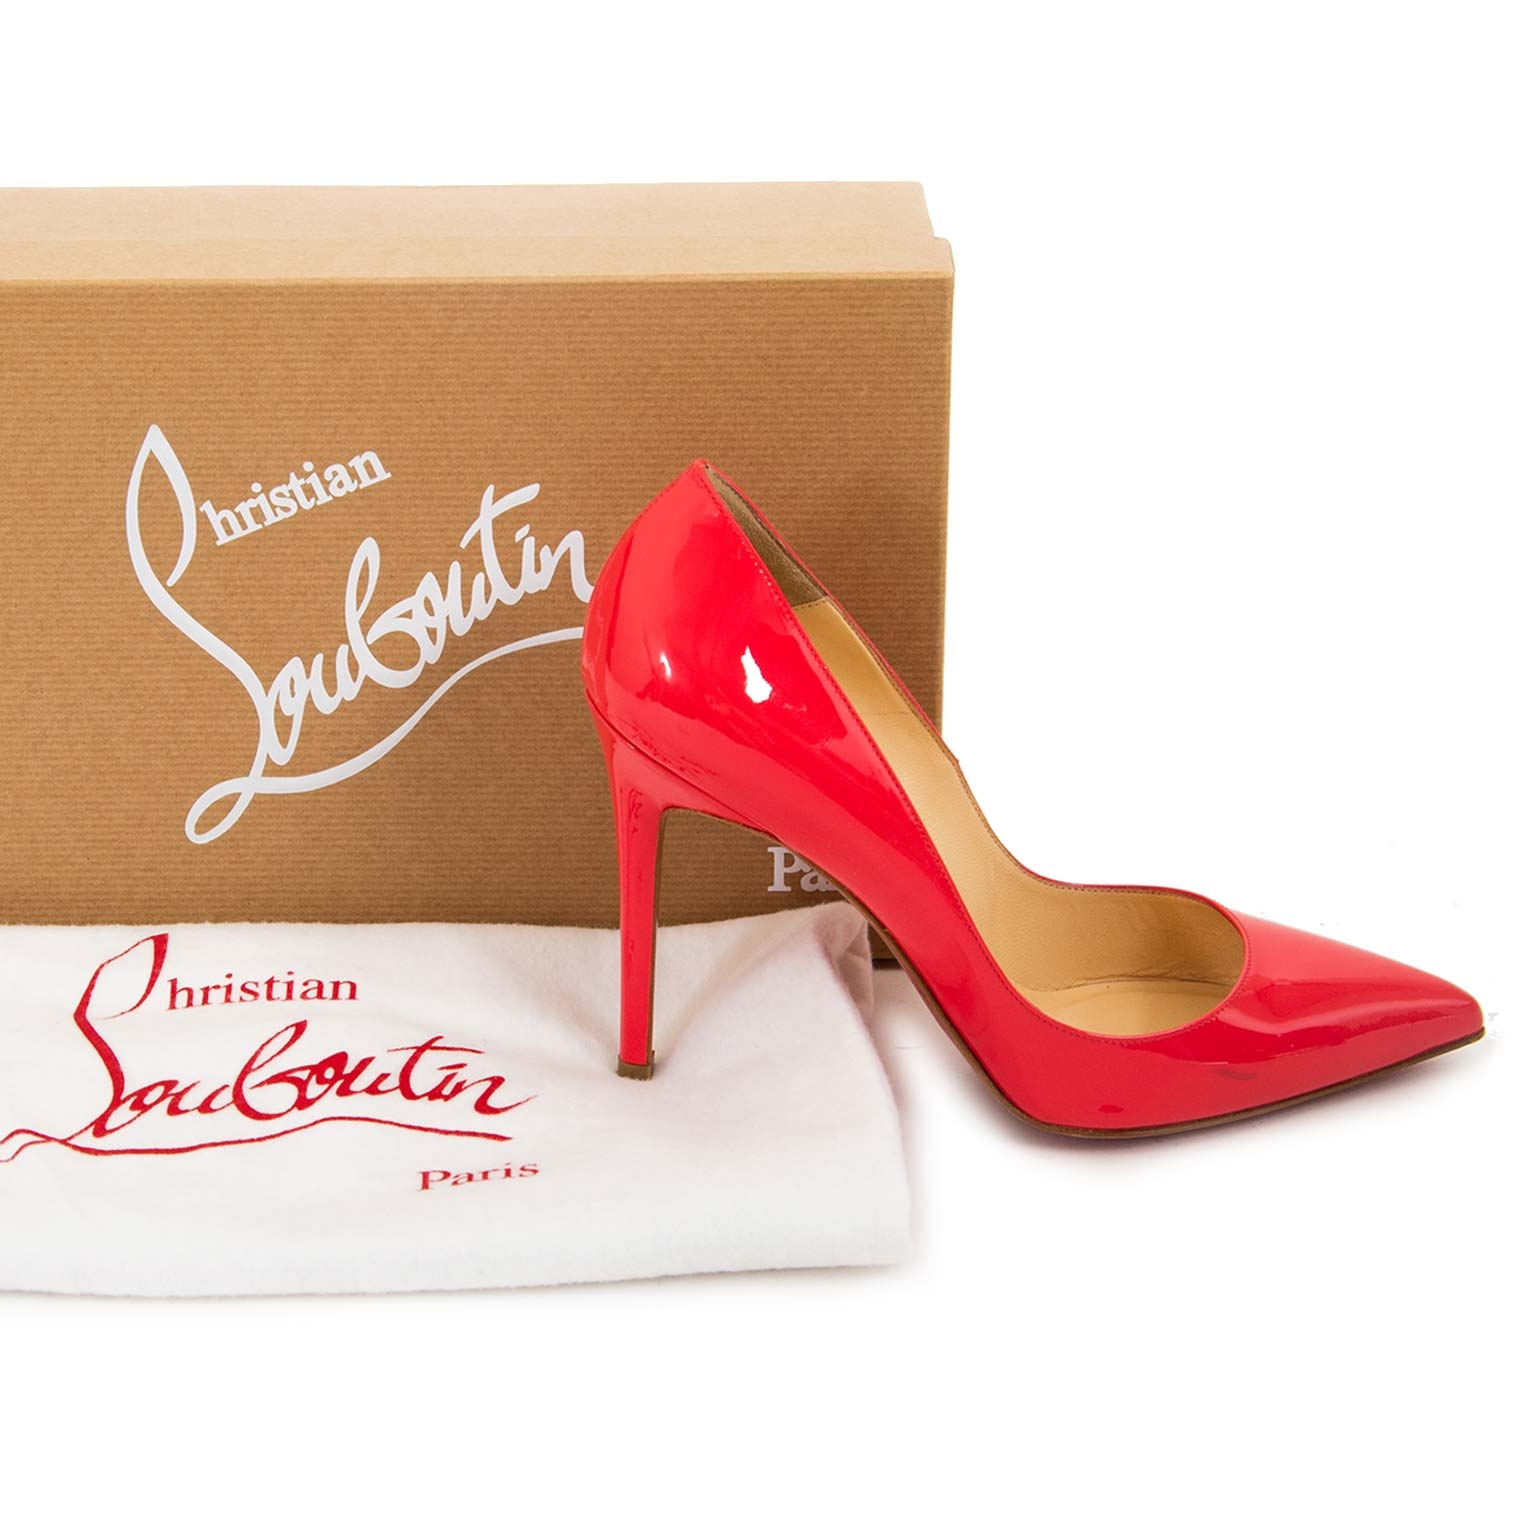 45563d0cc201 ... christian louboutin pigalle framboisine pumps now for sale at labellov  vintage fashion webshop belgium